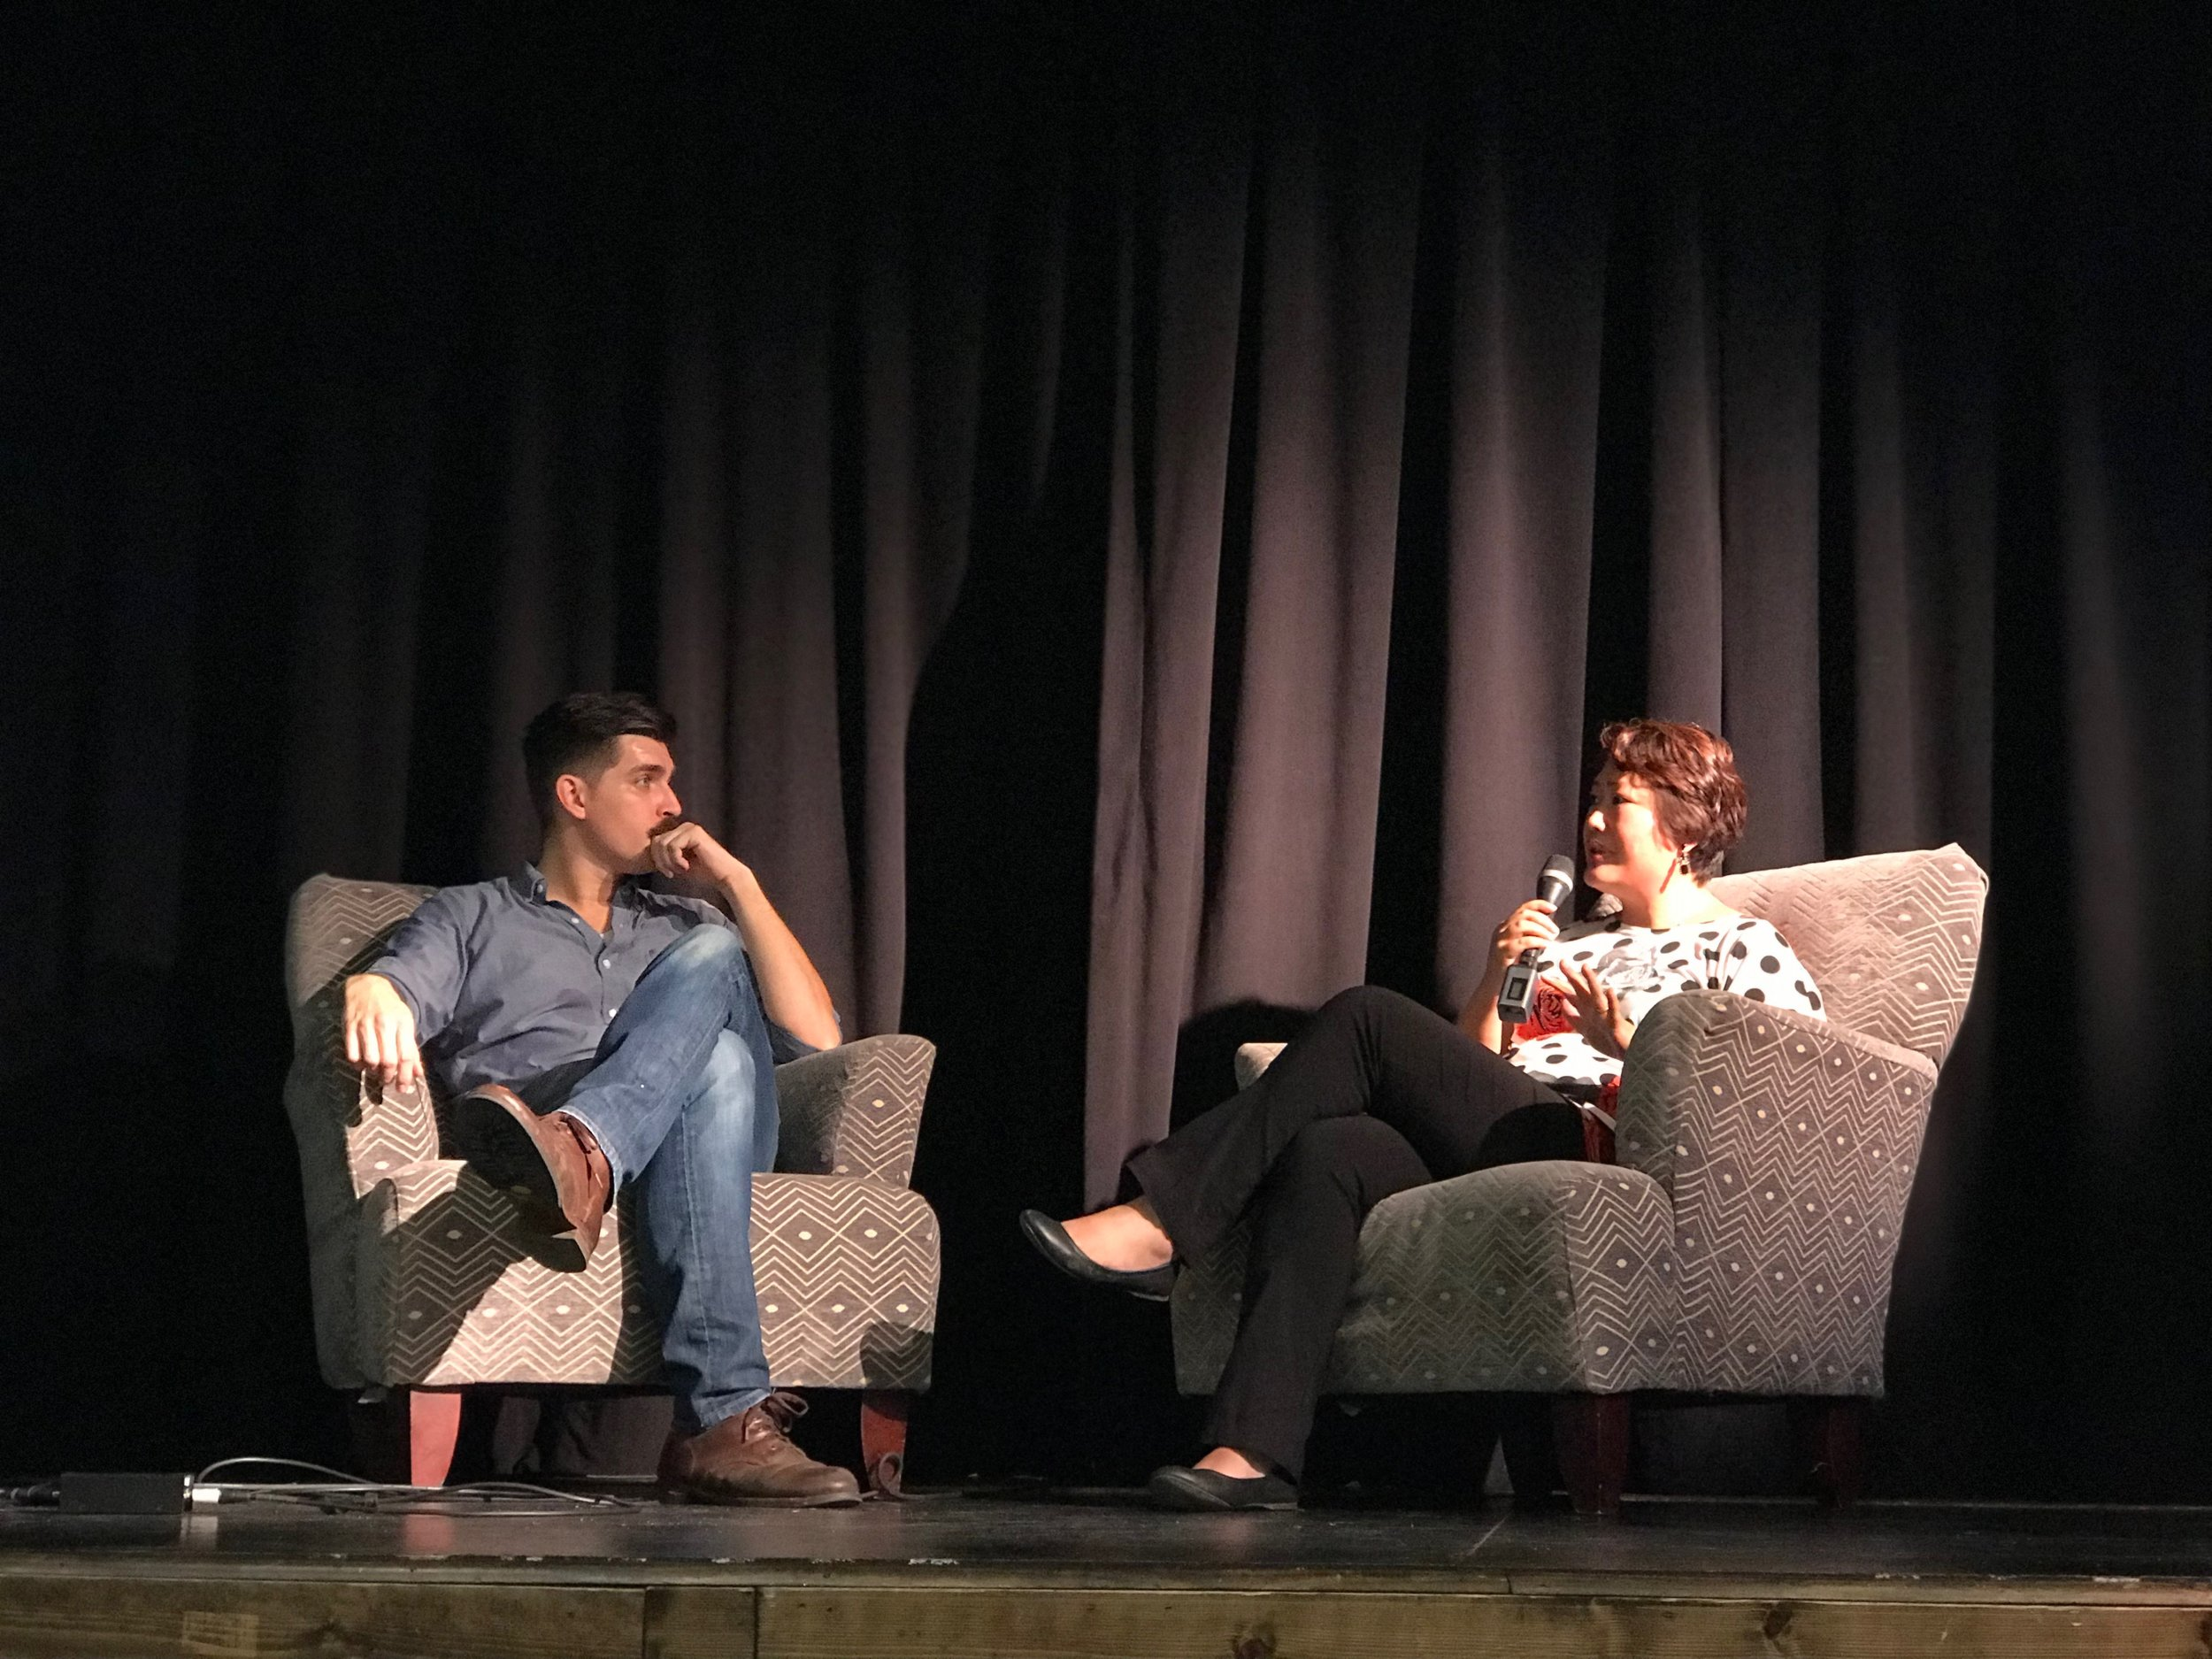 Rose was interviewed by Josh Nava, a graduate of the Institute of G.O.D. Josh and his wife, Deb, have served with Rose in India.